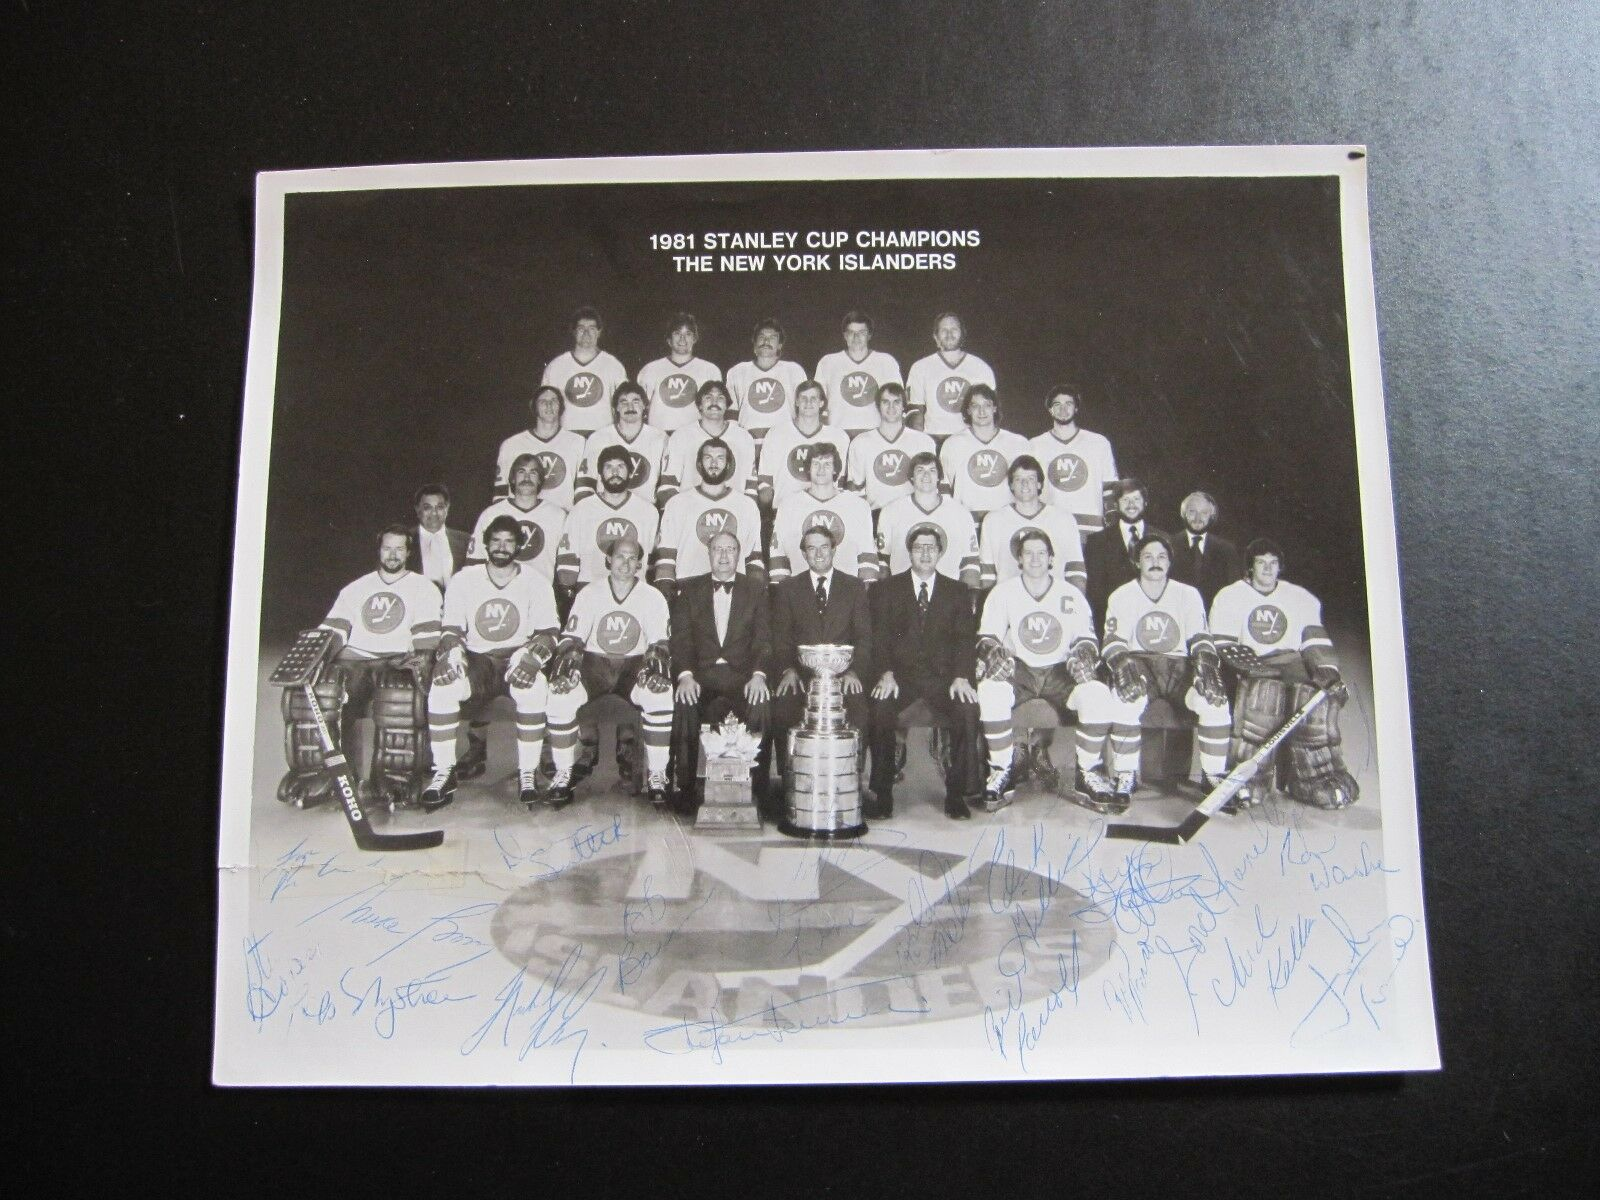 RARE  Autographed Team Photo - 1981 New York Islanders Stanley Cup Champions